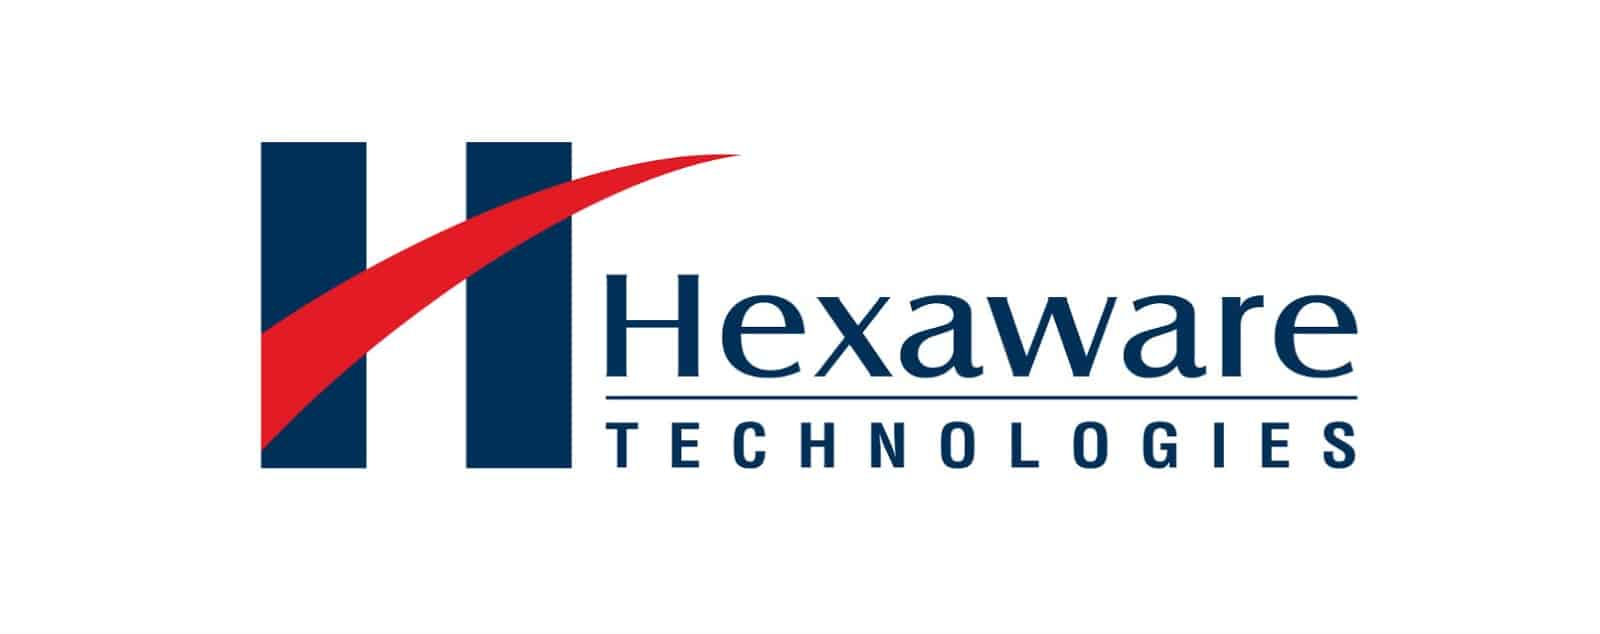 Mobiquity Acquired By Hexaware Technologies In $182 Million Deal